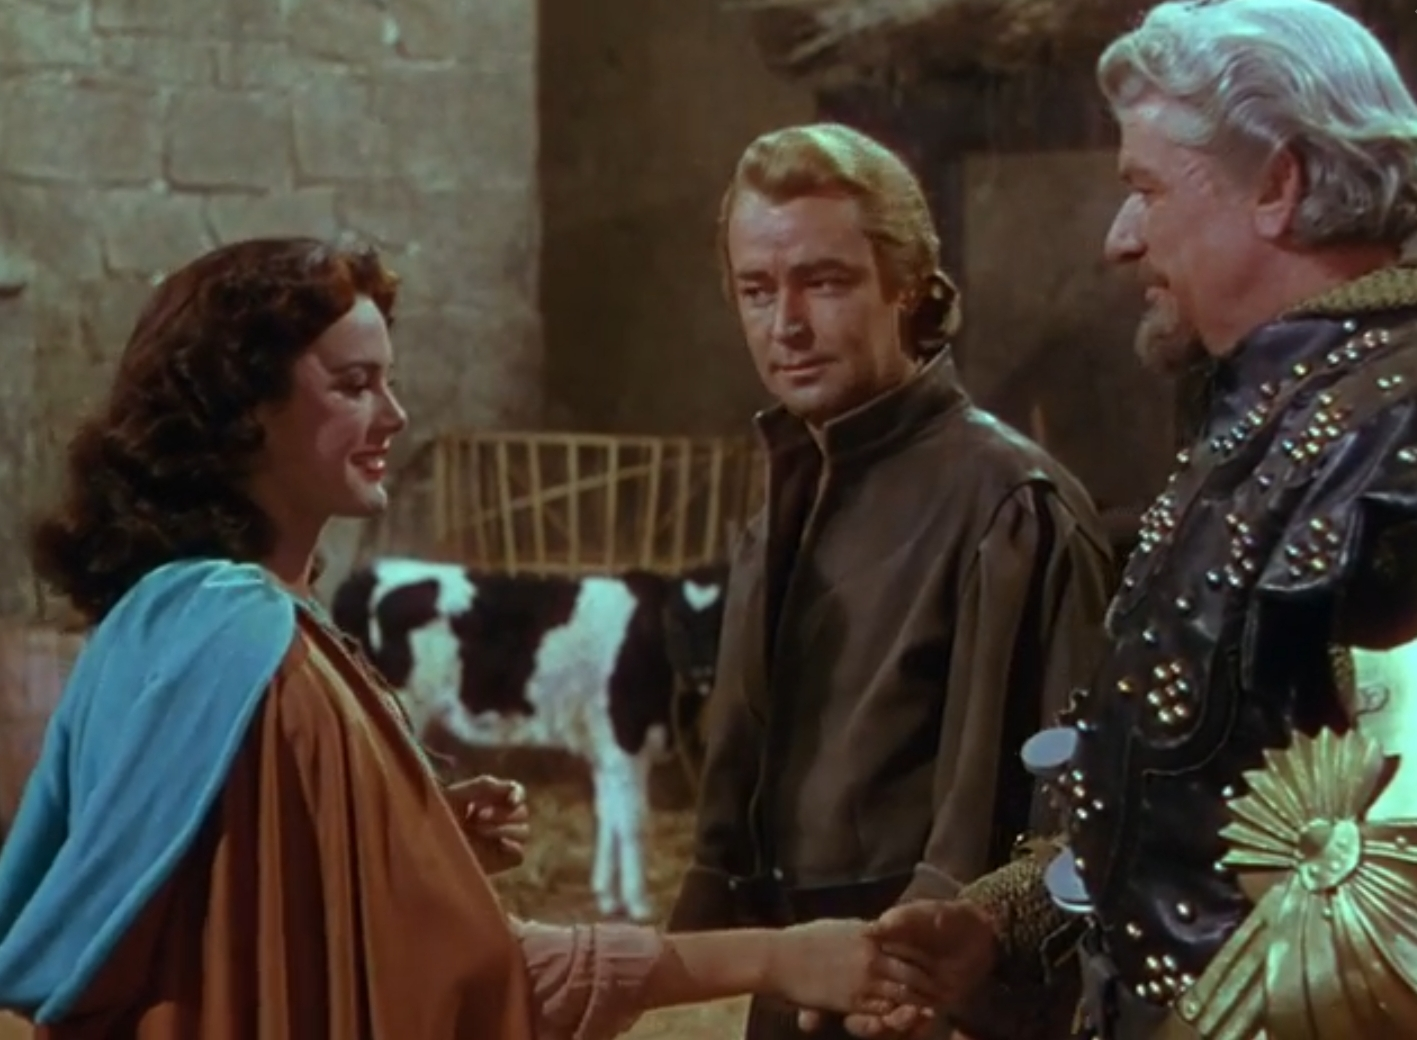 Alan Ladd and Patricia Medina in The Black Knight (1954)